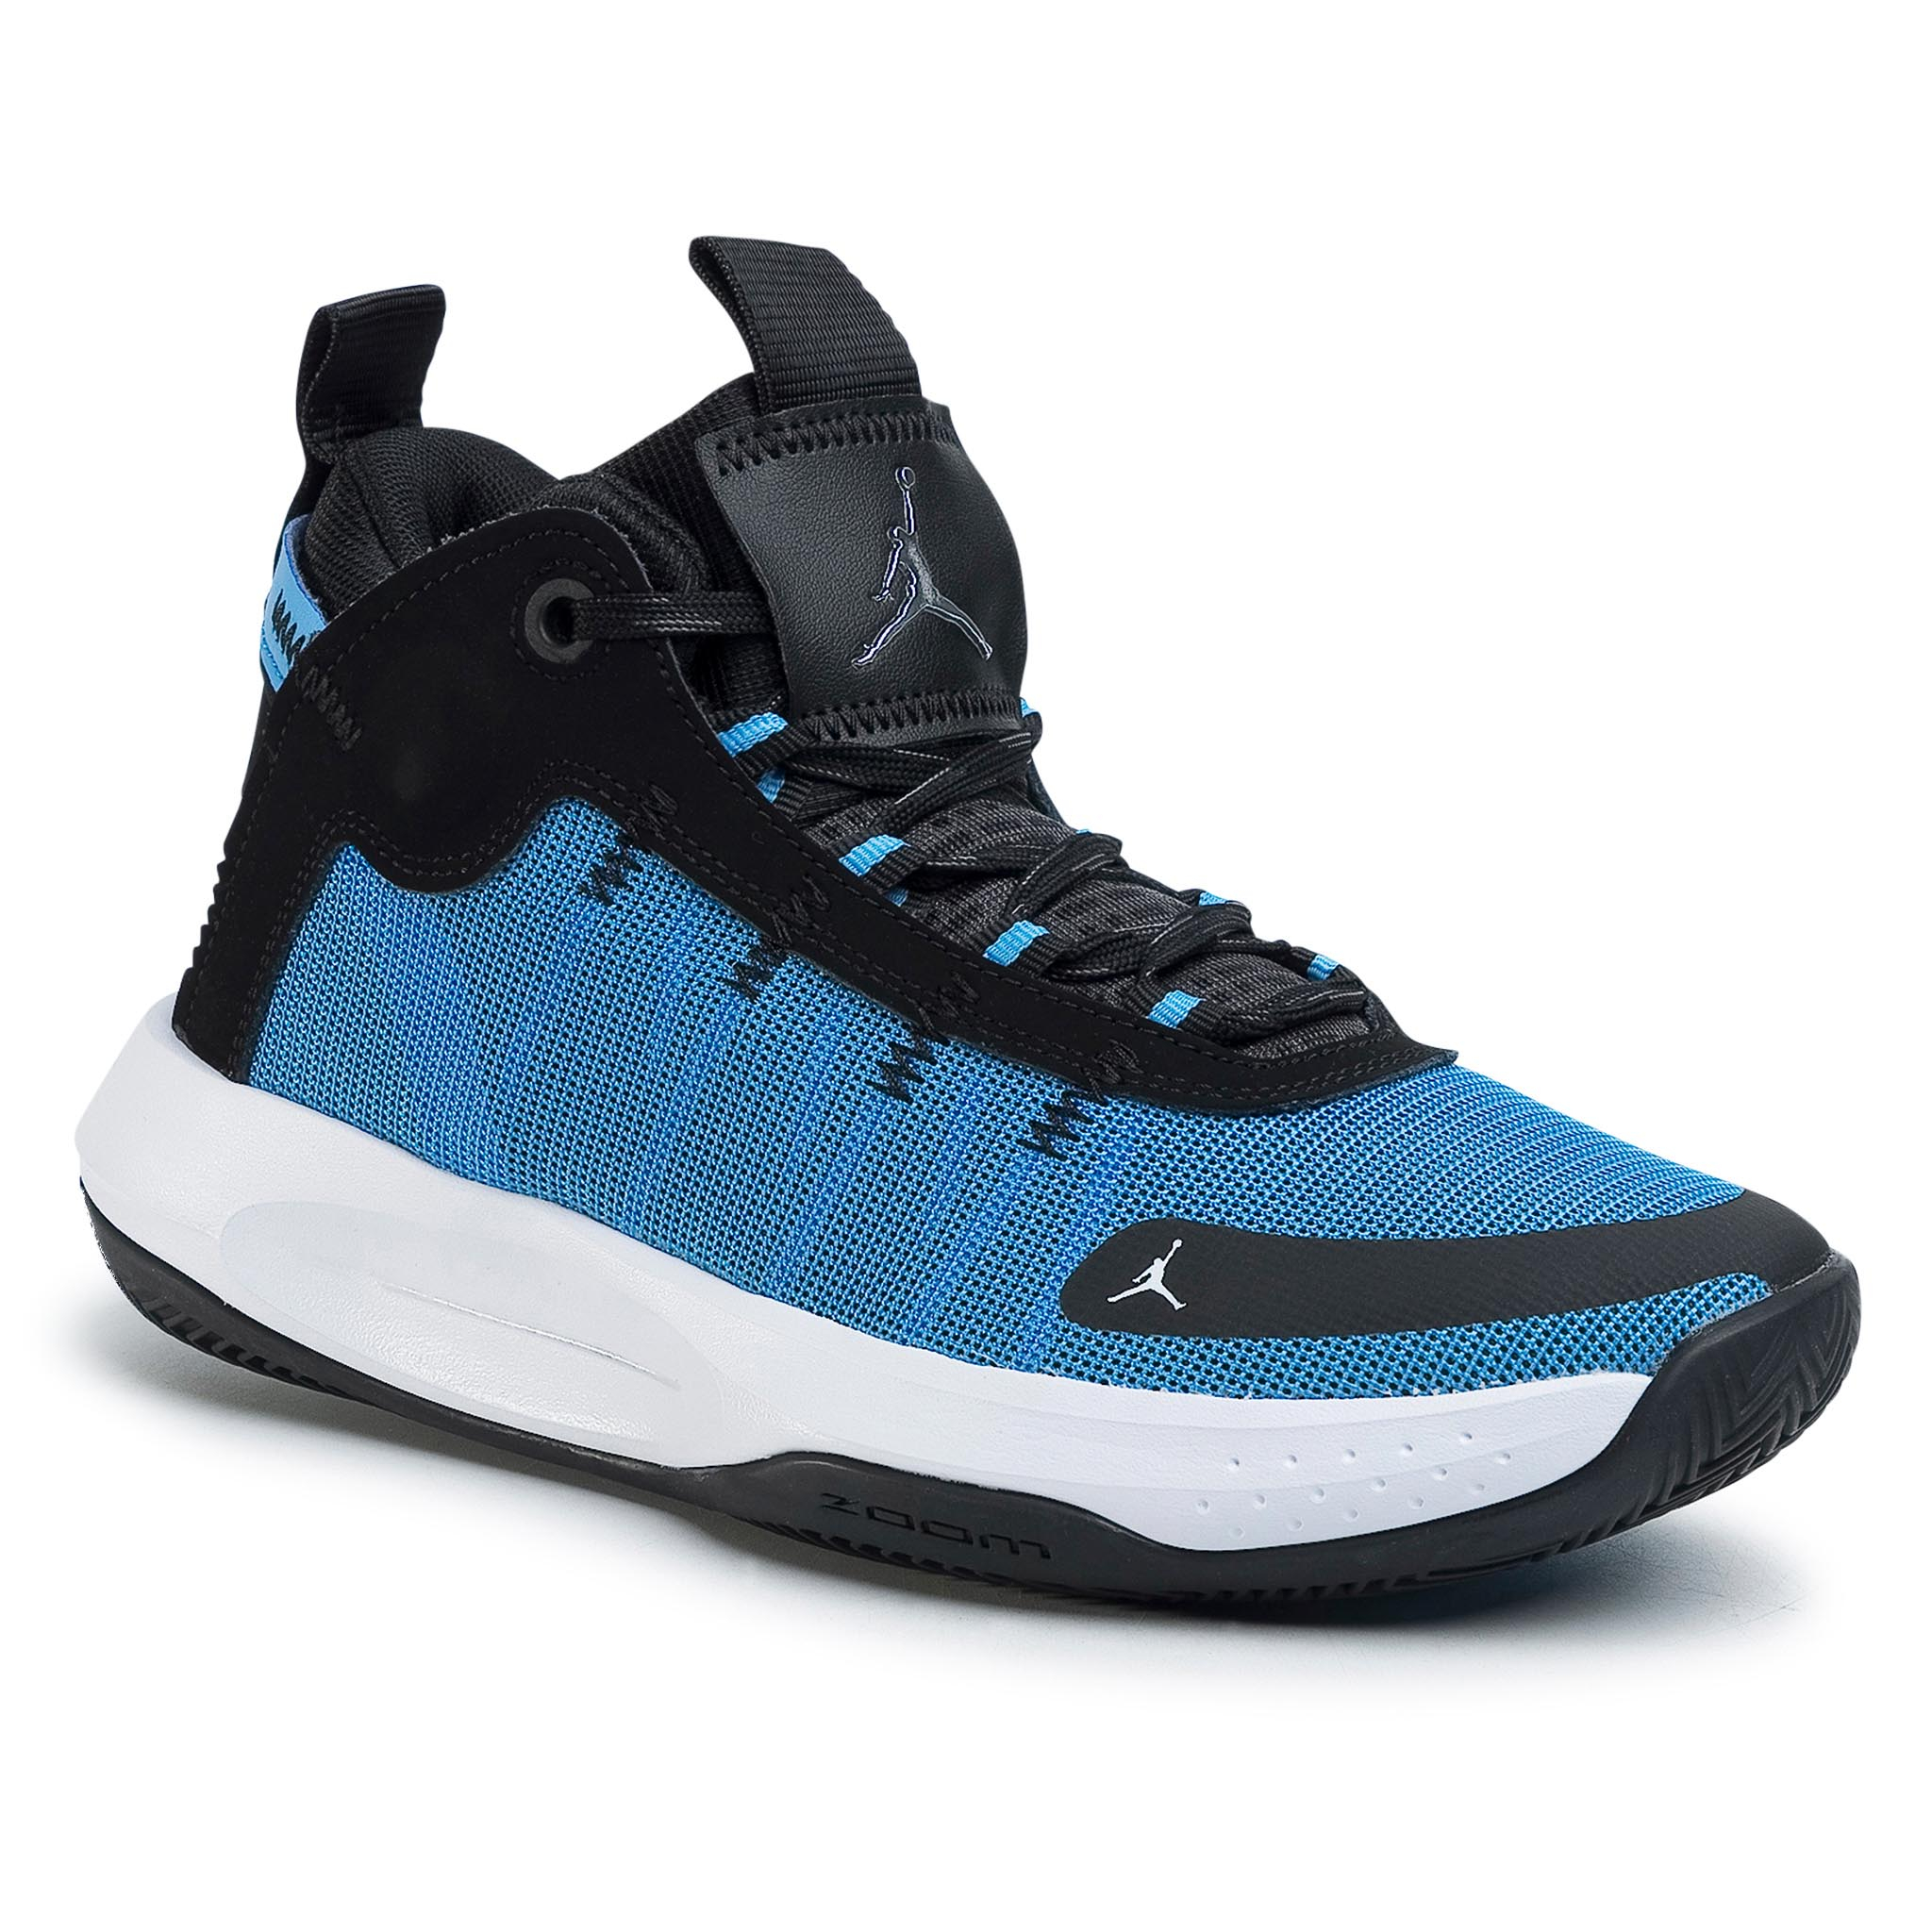 Pantofi Nike - Jordan Jumpman 2020 Bq3449 400 University Blue imagine epantofi.ro 2021